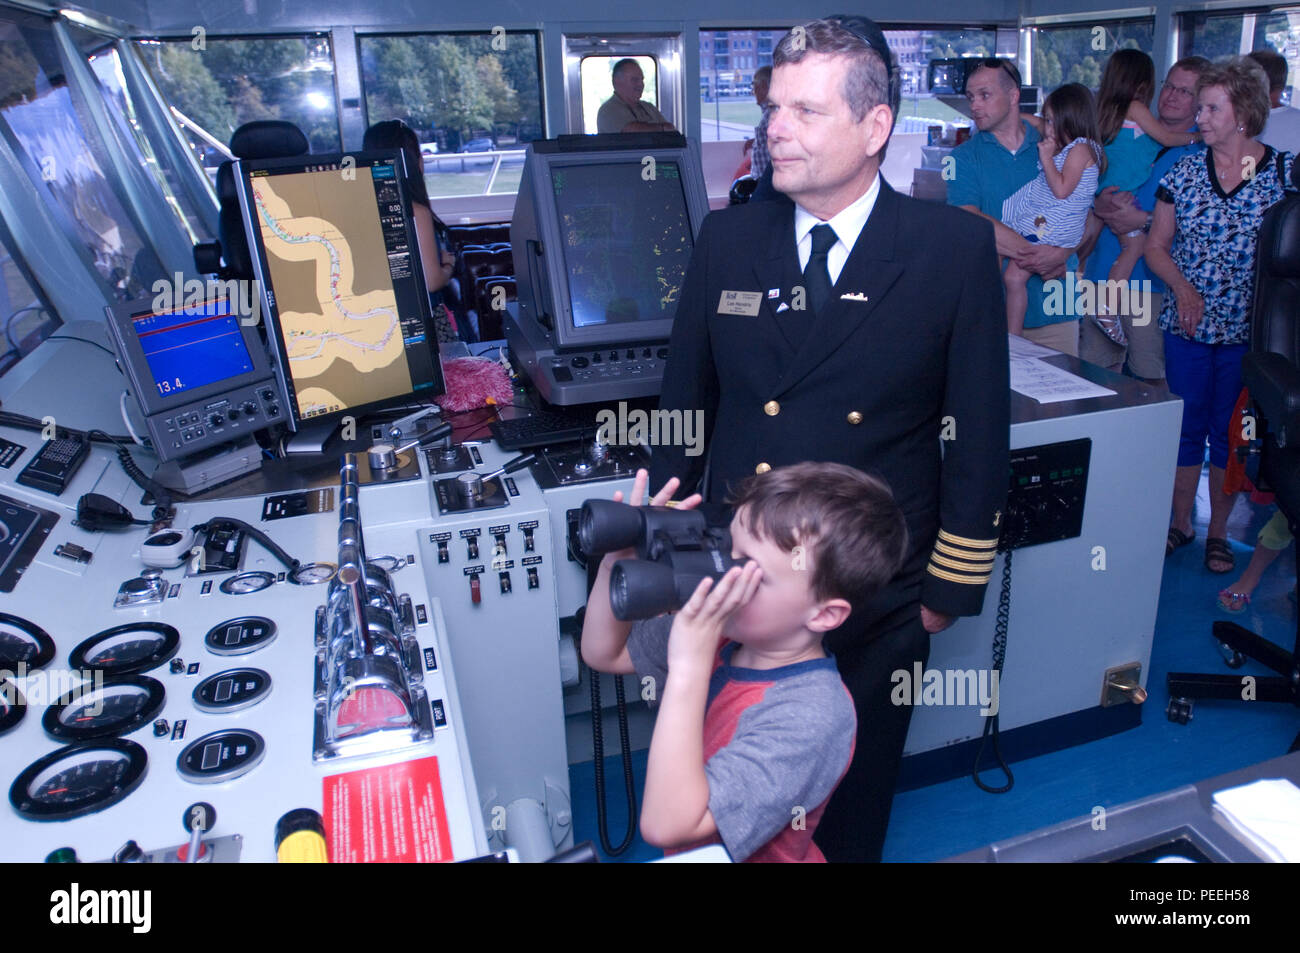 Motor Vessel Mississippi Captain Lee Hendrix watches as Garrett Durrett, 5, of Pelham, Ala., looks through a pair of binoculars during a public tour of the vessel docked at Ross's Landing in Chattanooga, Tenn., Aug. 7, 2015. The M/V Mississippi spends more than 90 percent of its time as a working towboat, moving barges, equipment and supplies on the lower Mississippi River. The M/V Mississippi, built in 1993 by Halter Marine, is the fifth Army Corps of Engineers towboat to bear the name.  It is the largest diesel towboat in the United States at 241-feet long, 58-feet wide and five stories high - Stock Image